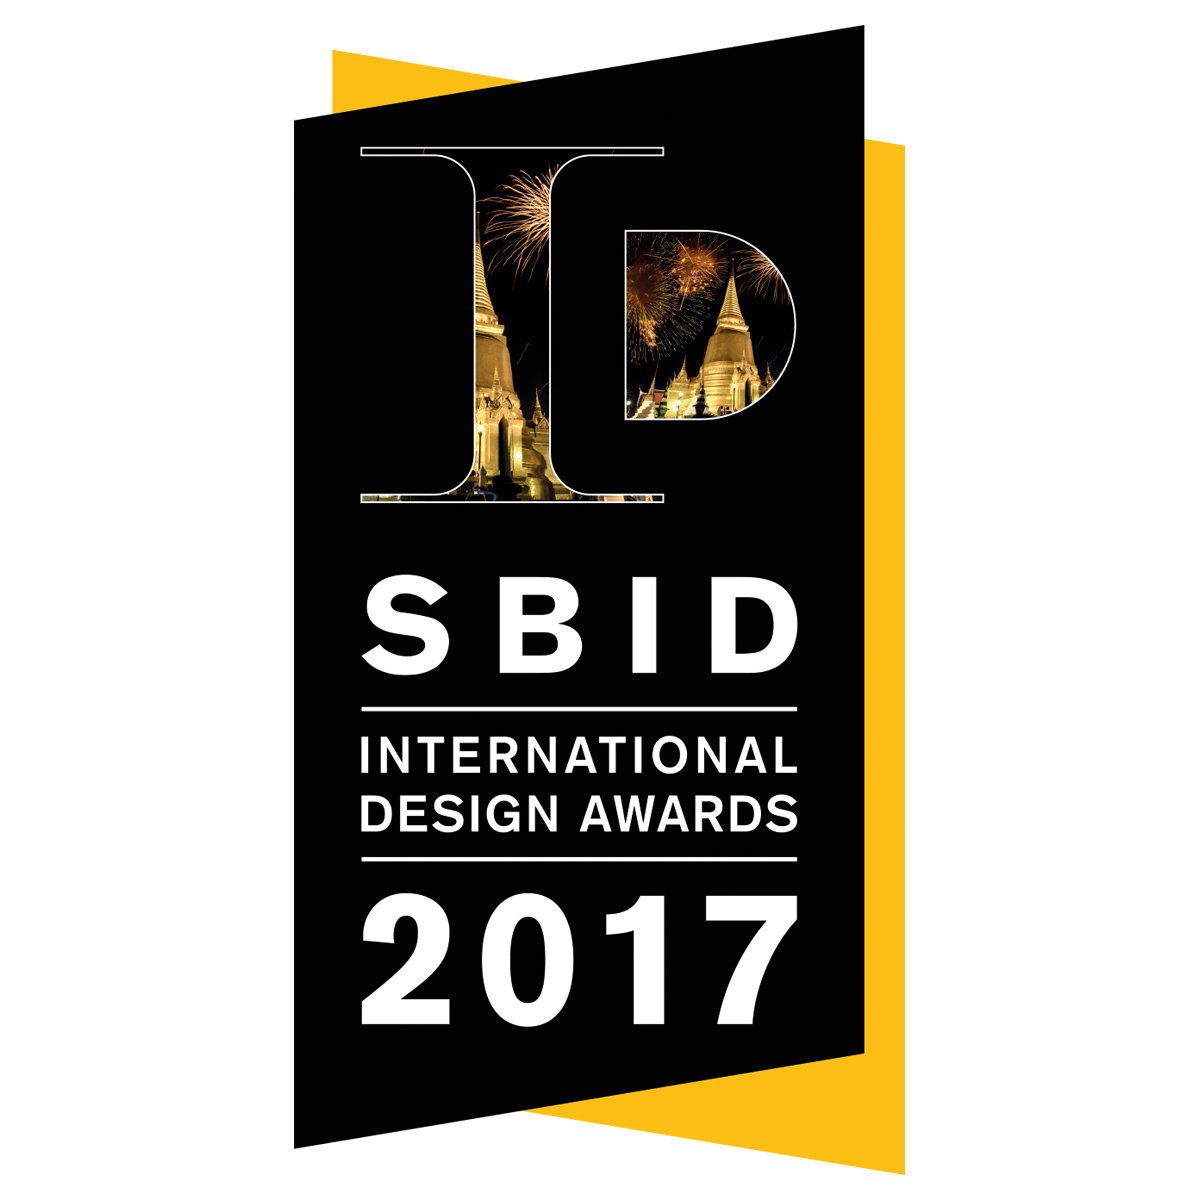 2017 SBID International Design Awards